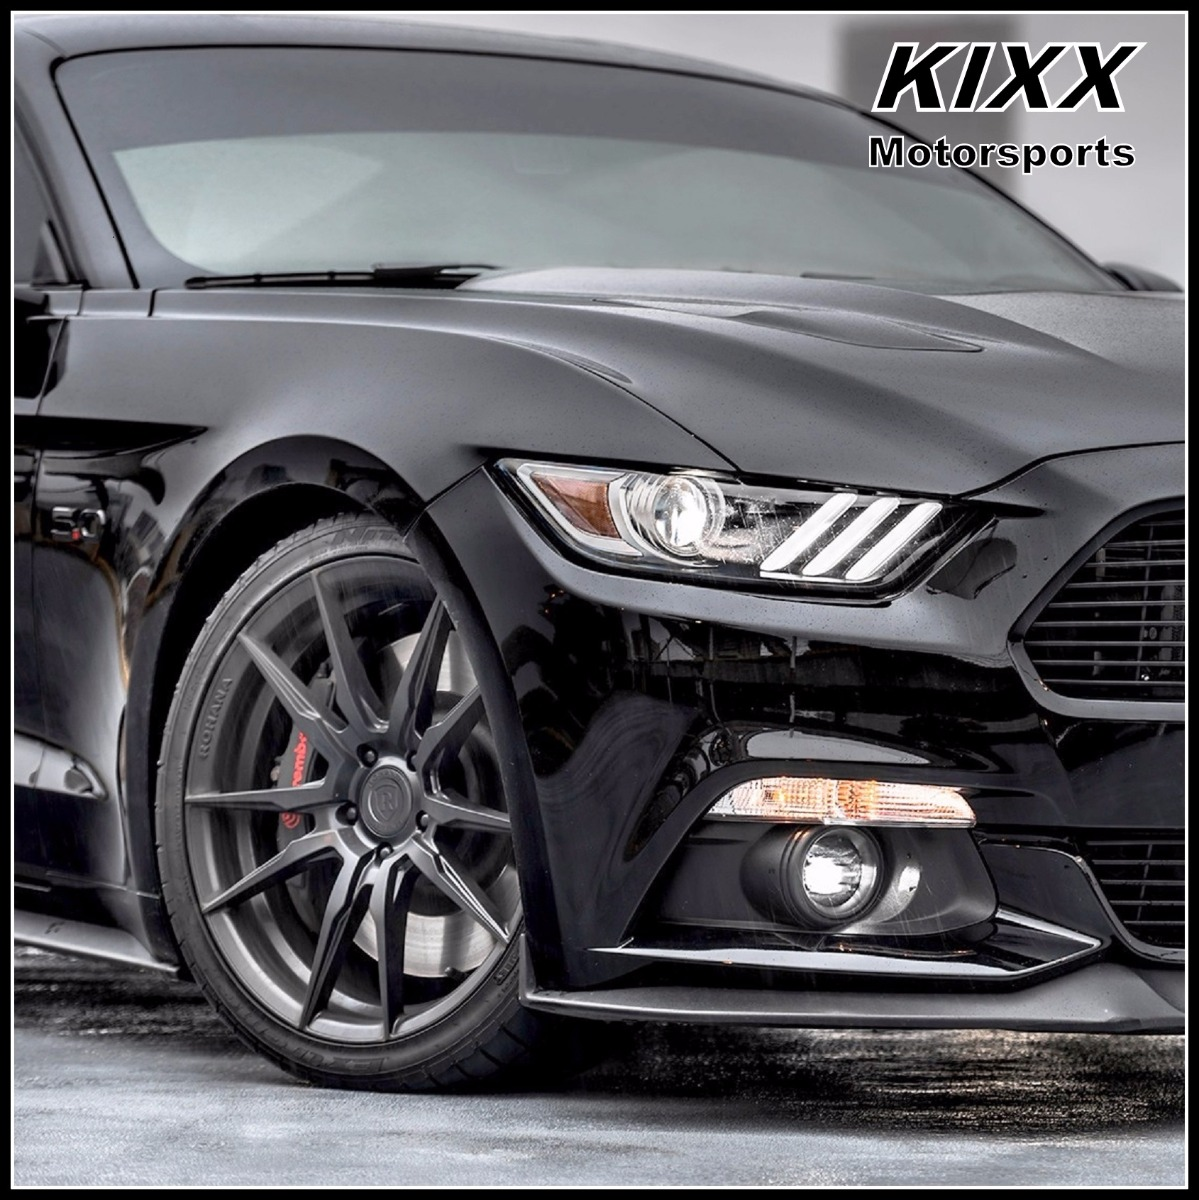 20 rohana rf2 20x9 20x10 black forged concave wheels for ford mustang gt gt500